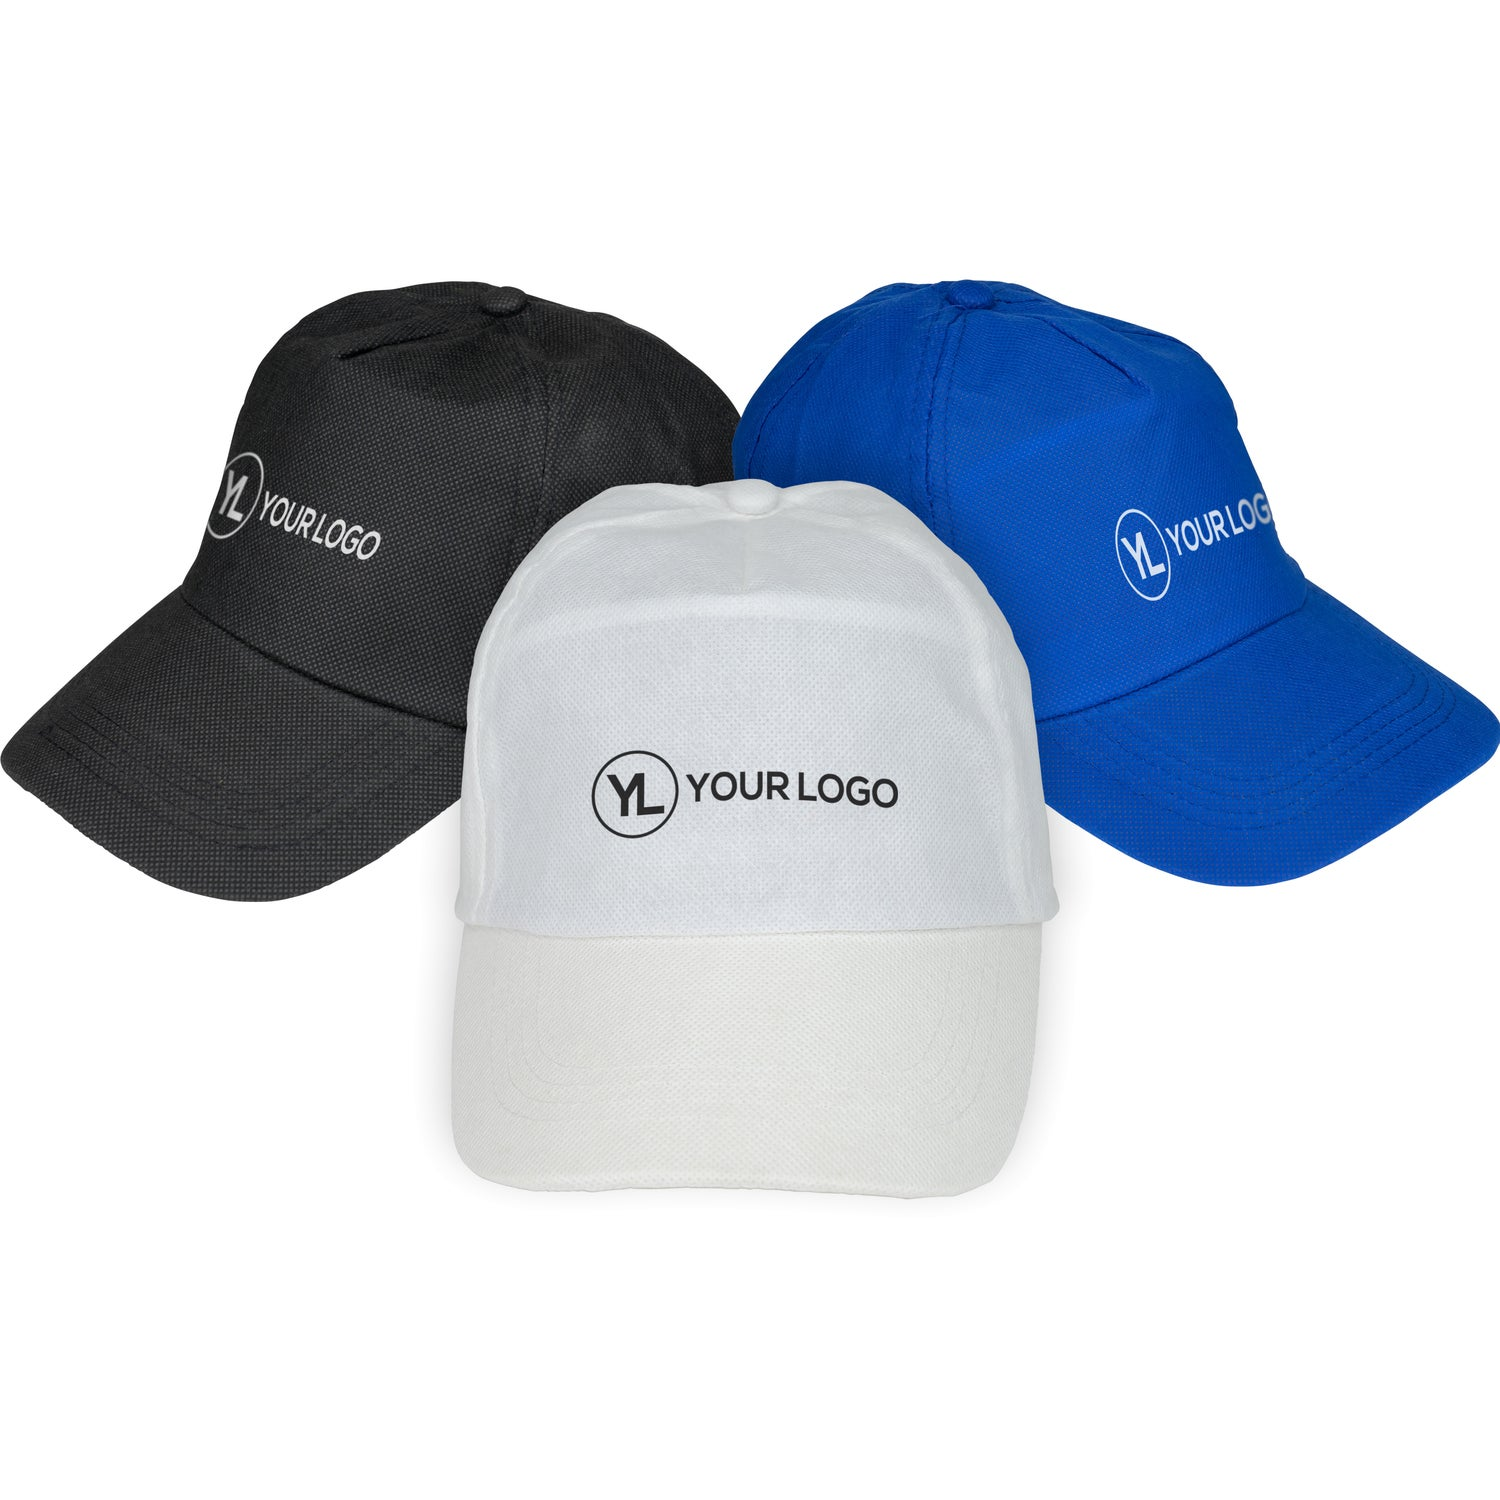 6932aba84e4f9 CLICK HERE to Order Budget Saver Non-Woven Caps Printed with Your ...